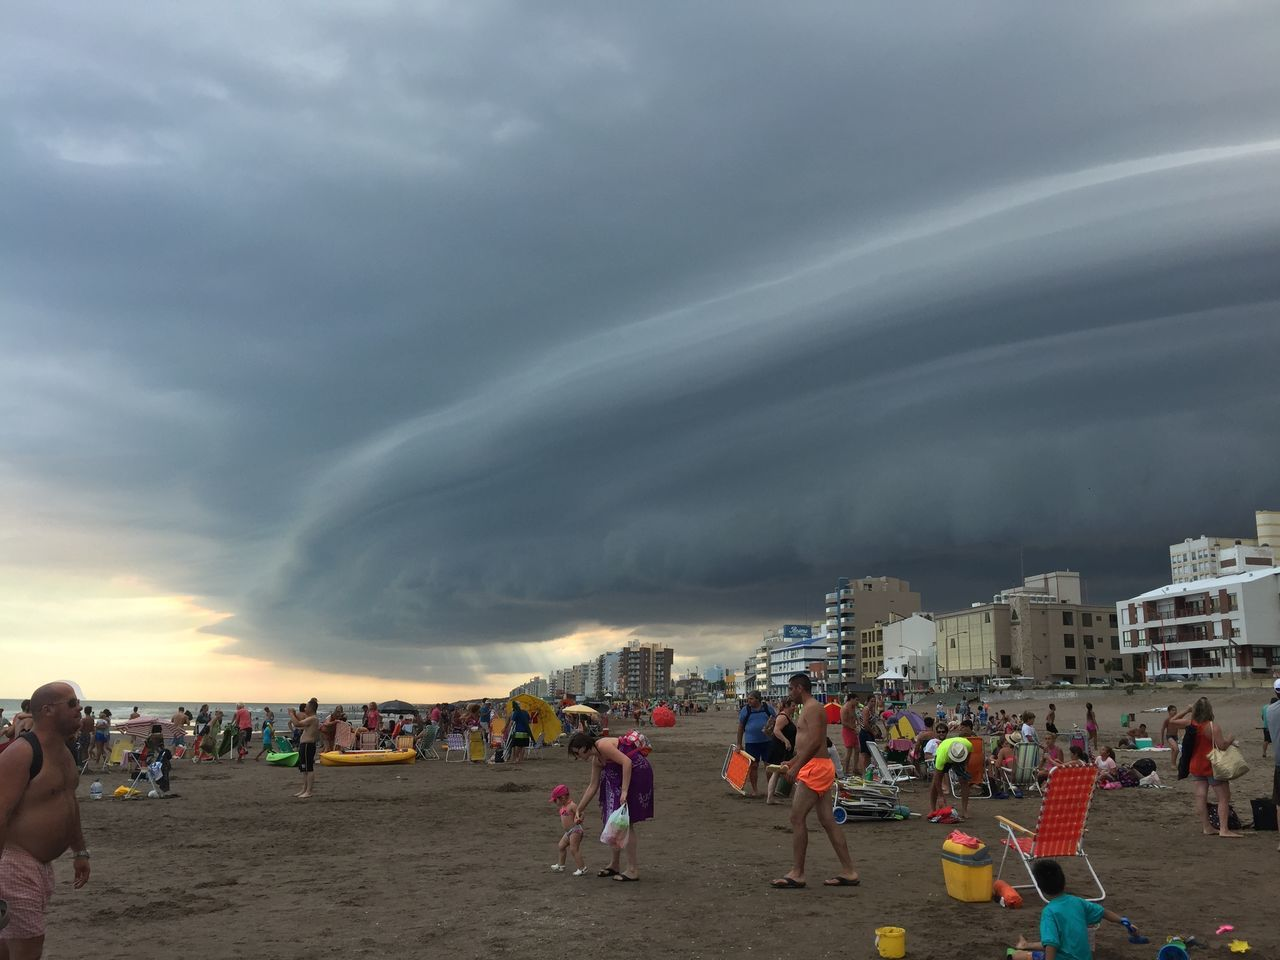 Crowd At Beach Against Cloudy Sky